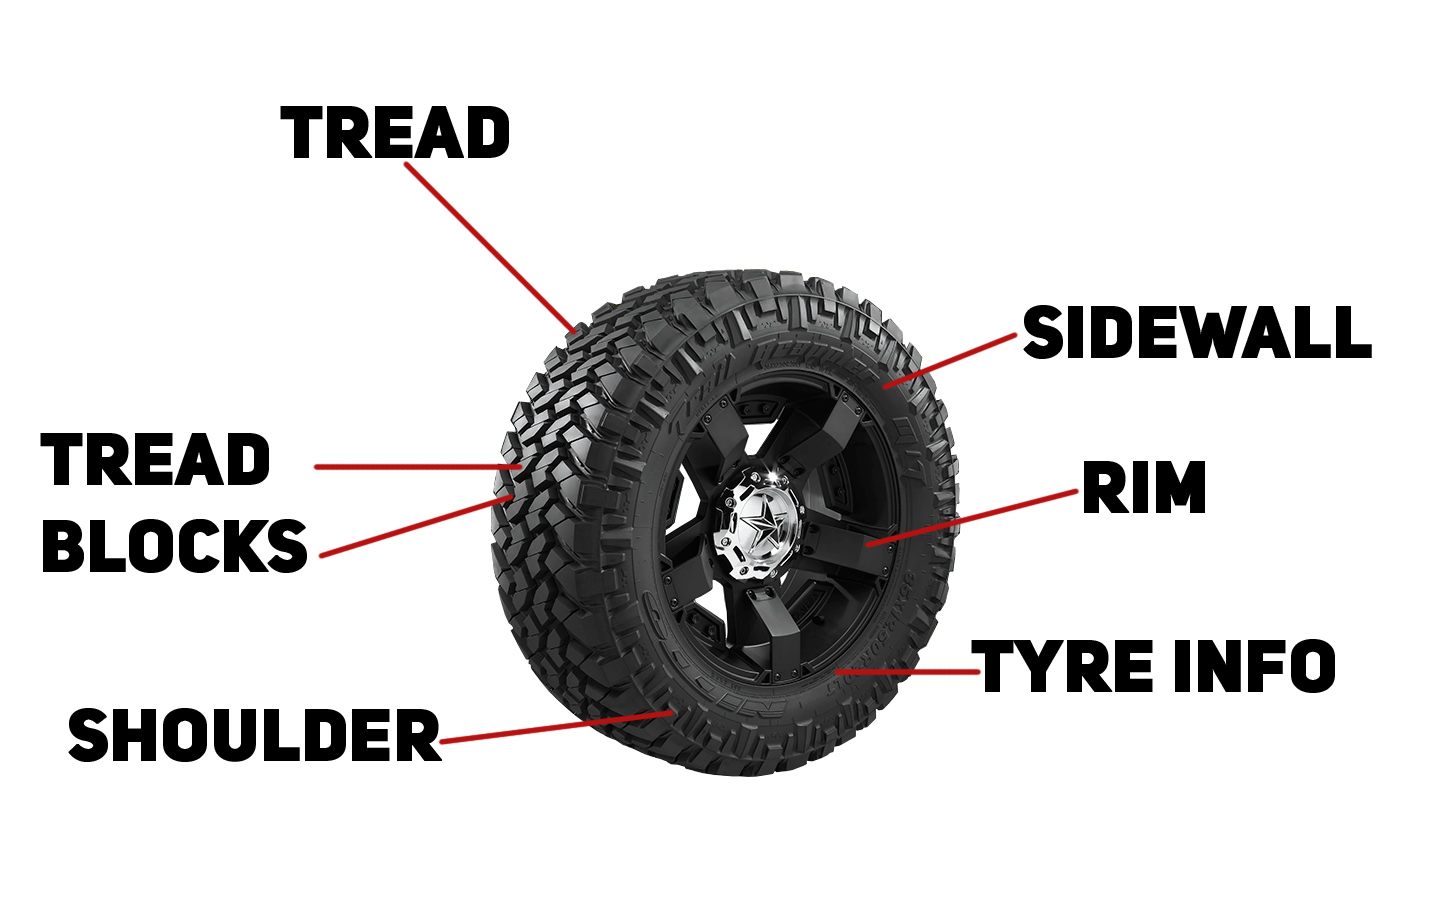 A labelled diagram of a Nitto Trail Grappler Tyre.